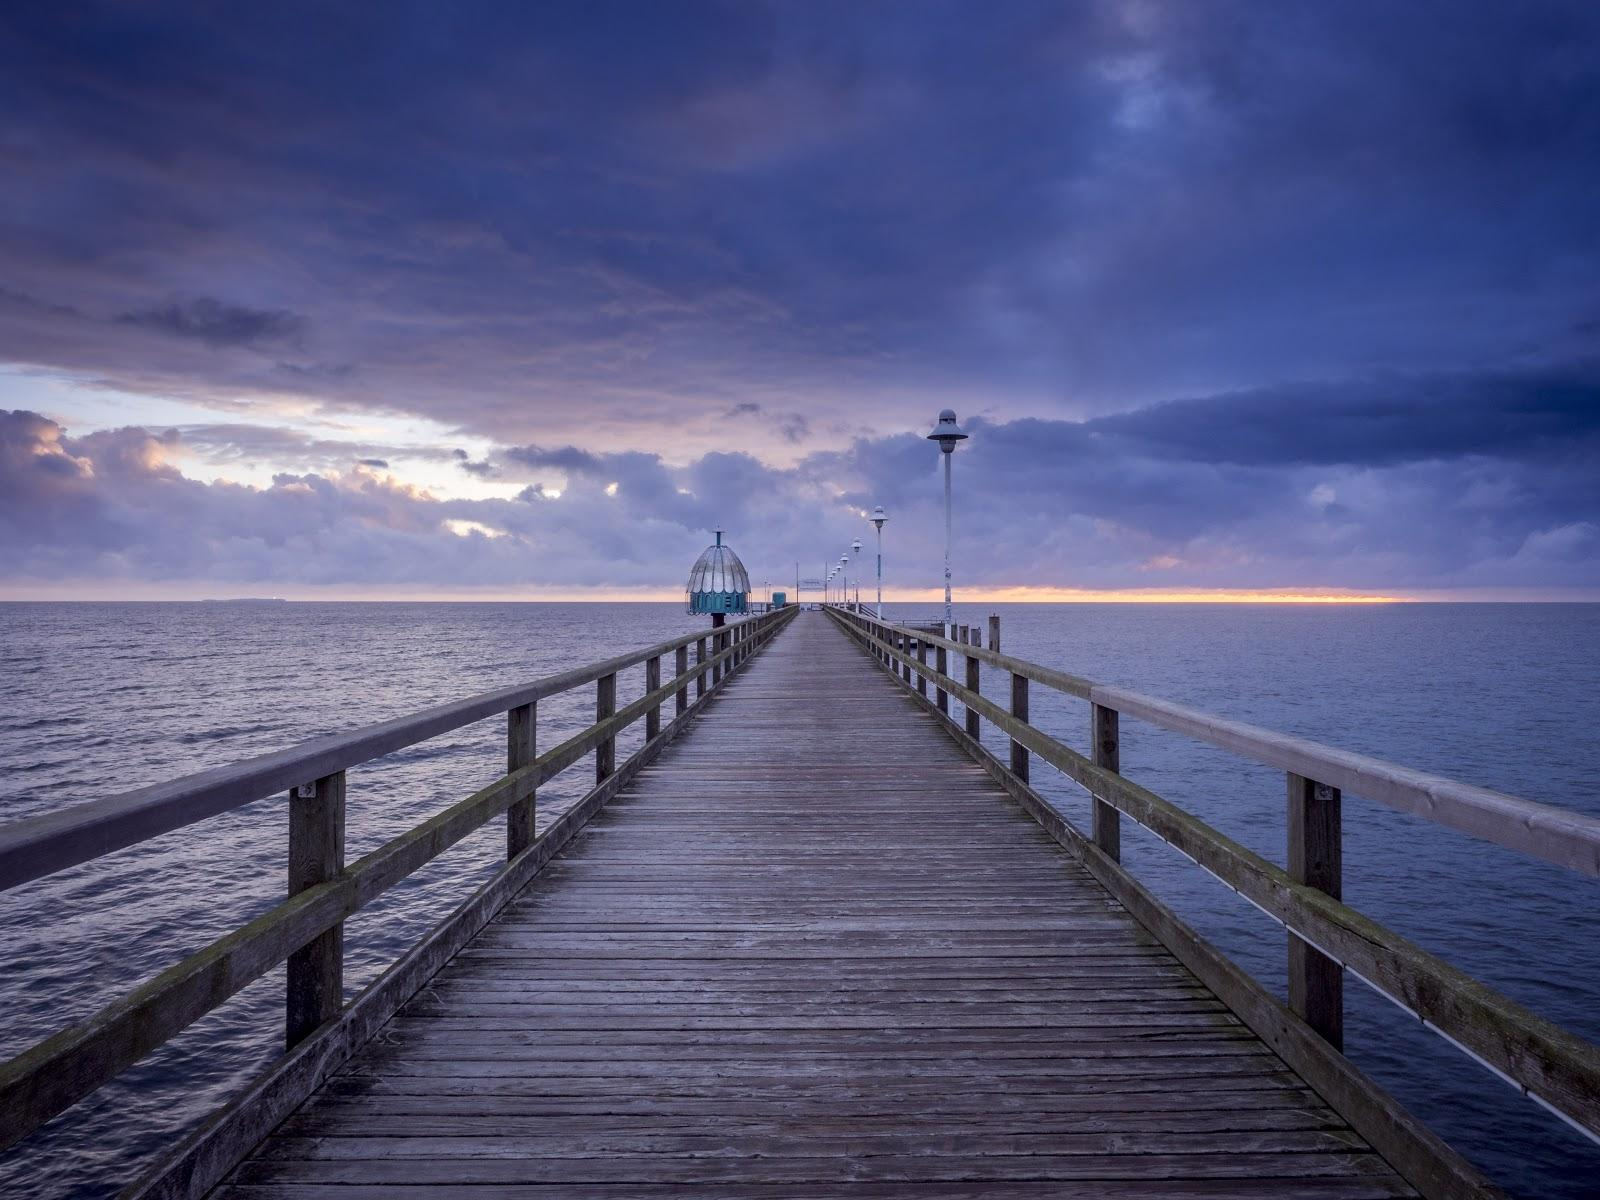 types pictures of a wooden pier